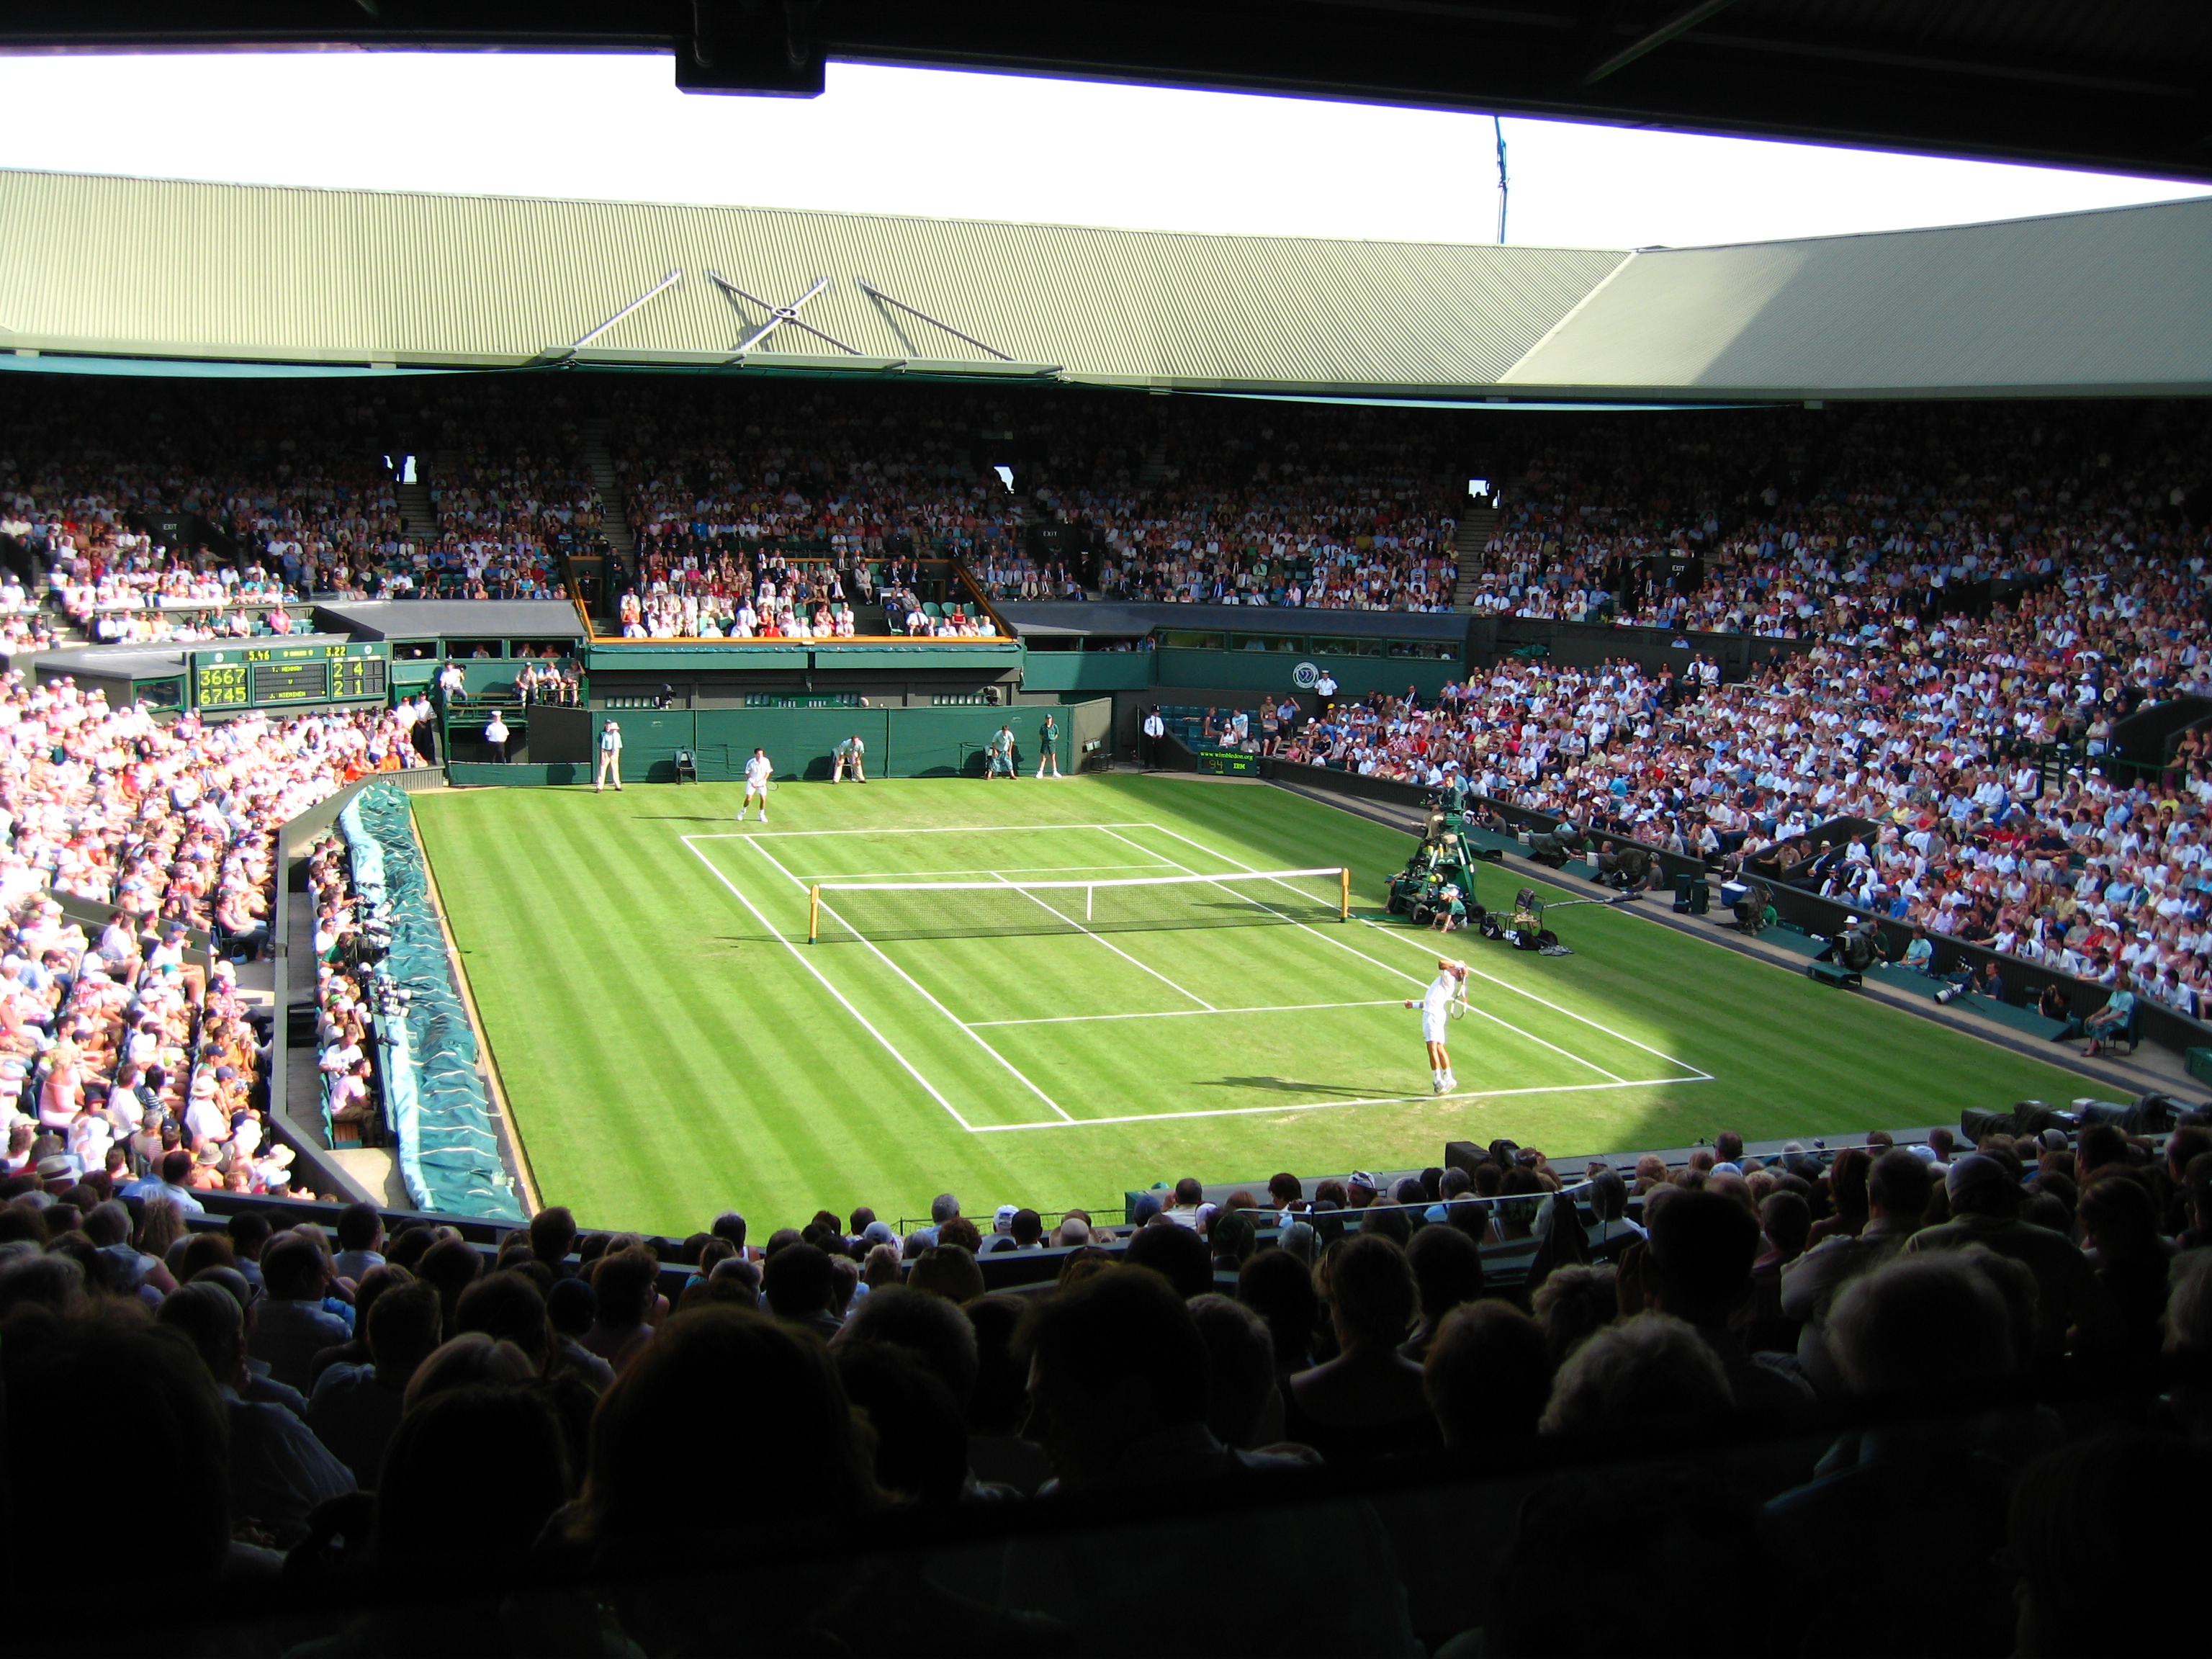 Centre Court at the Wimbledon Tennis Championships